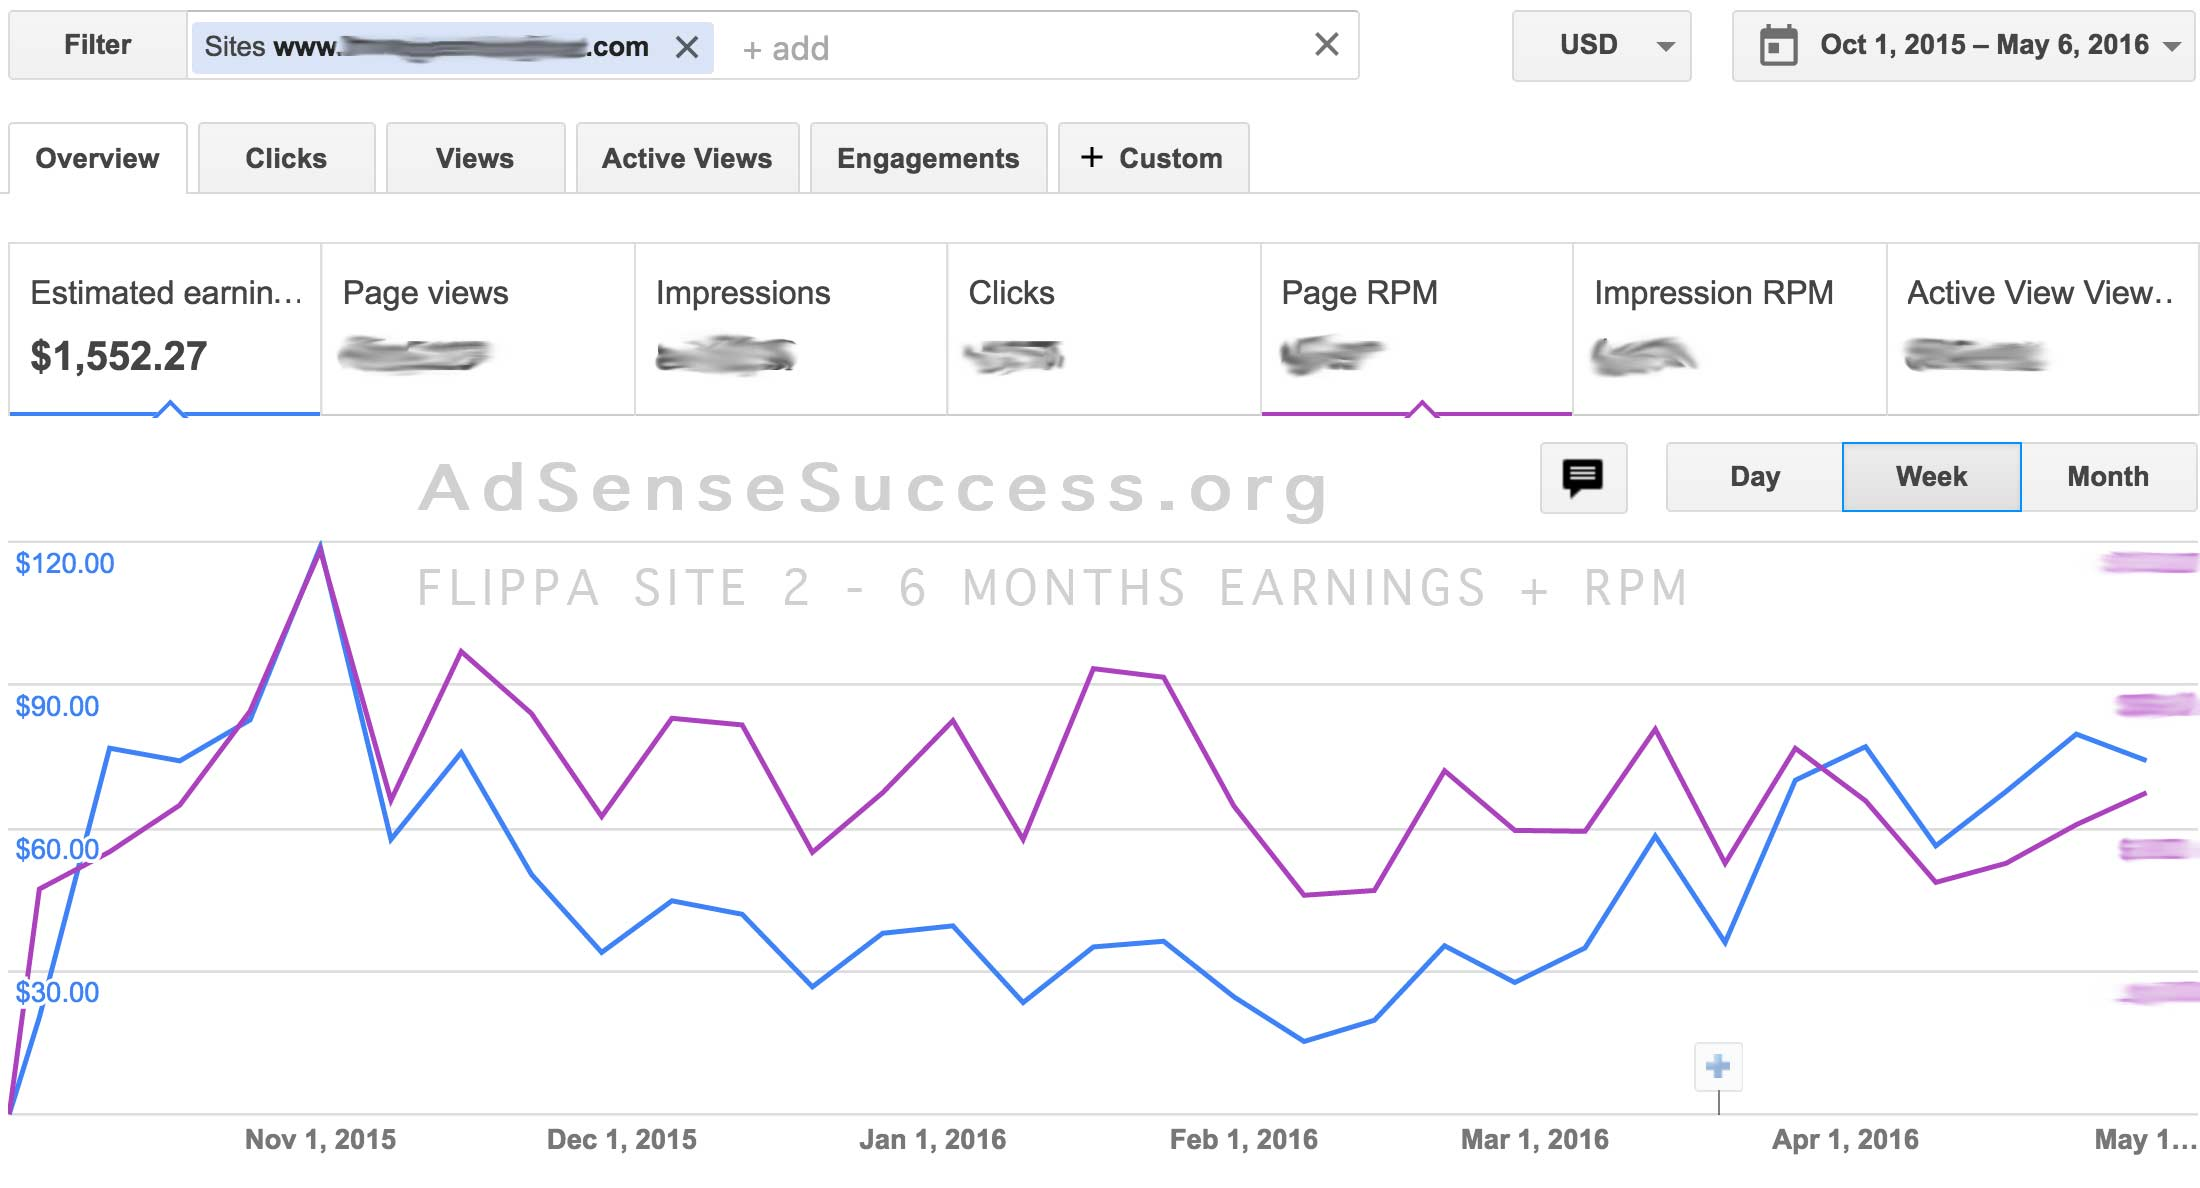 6-Months-Earnings-RPM-Flippa-Site-2